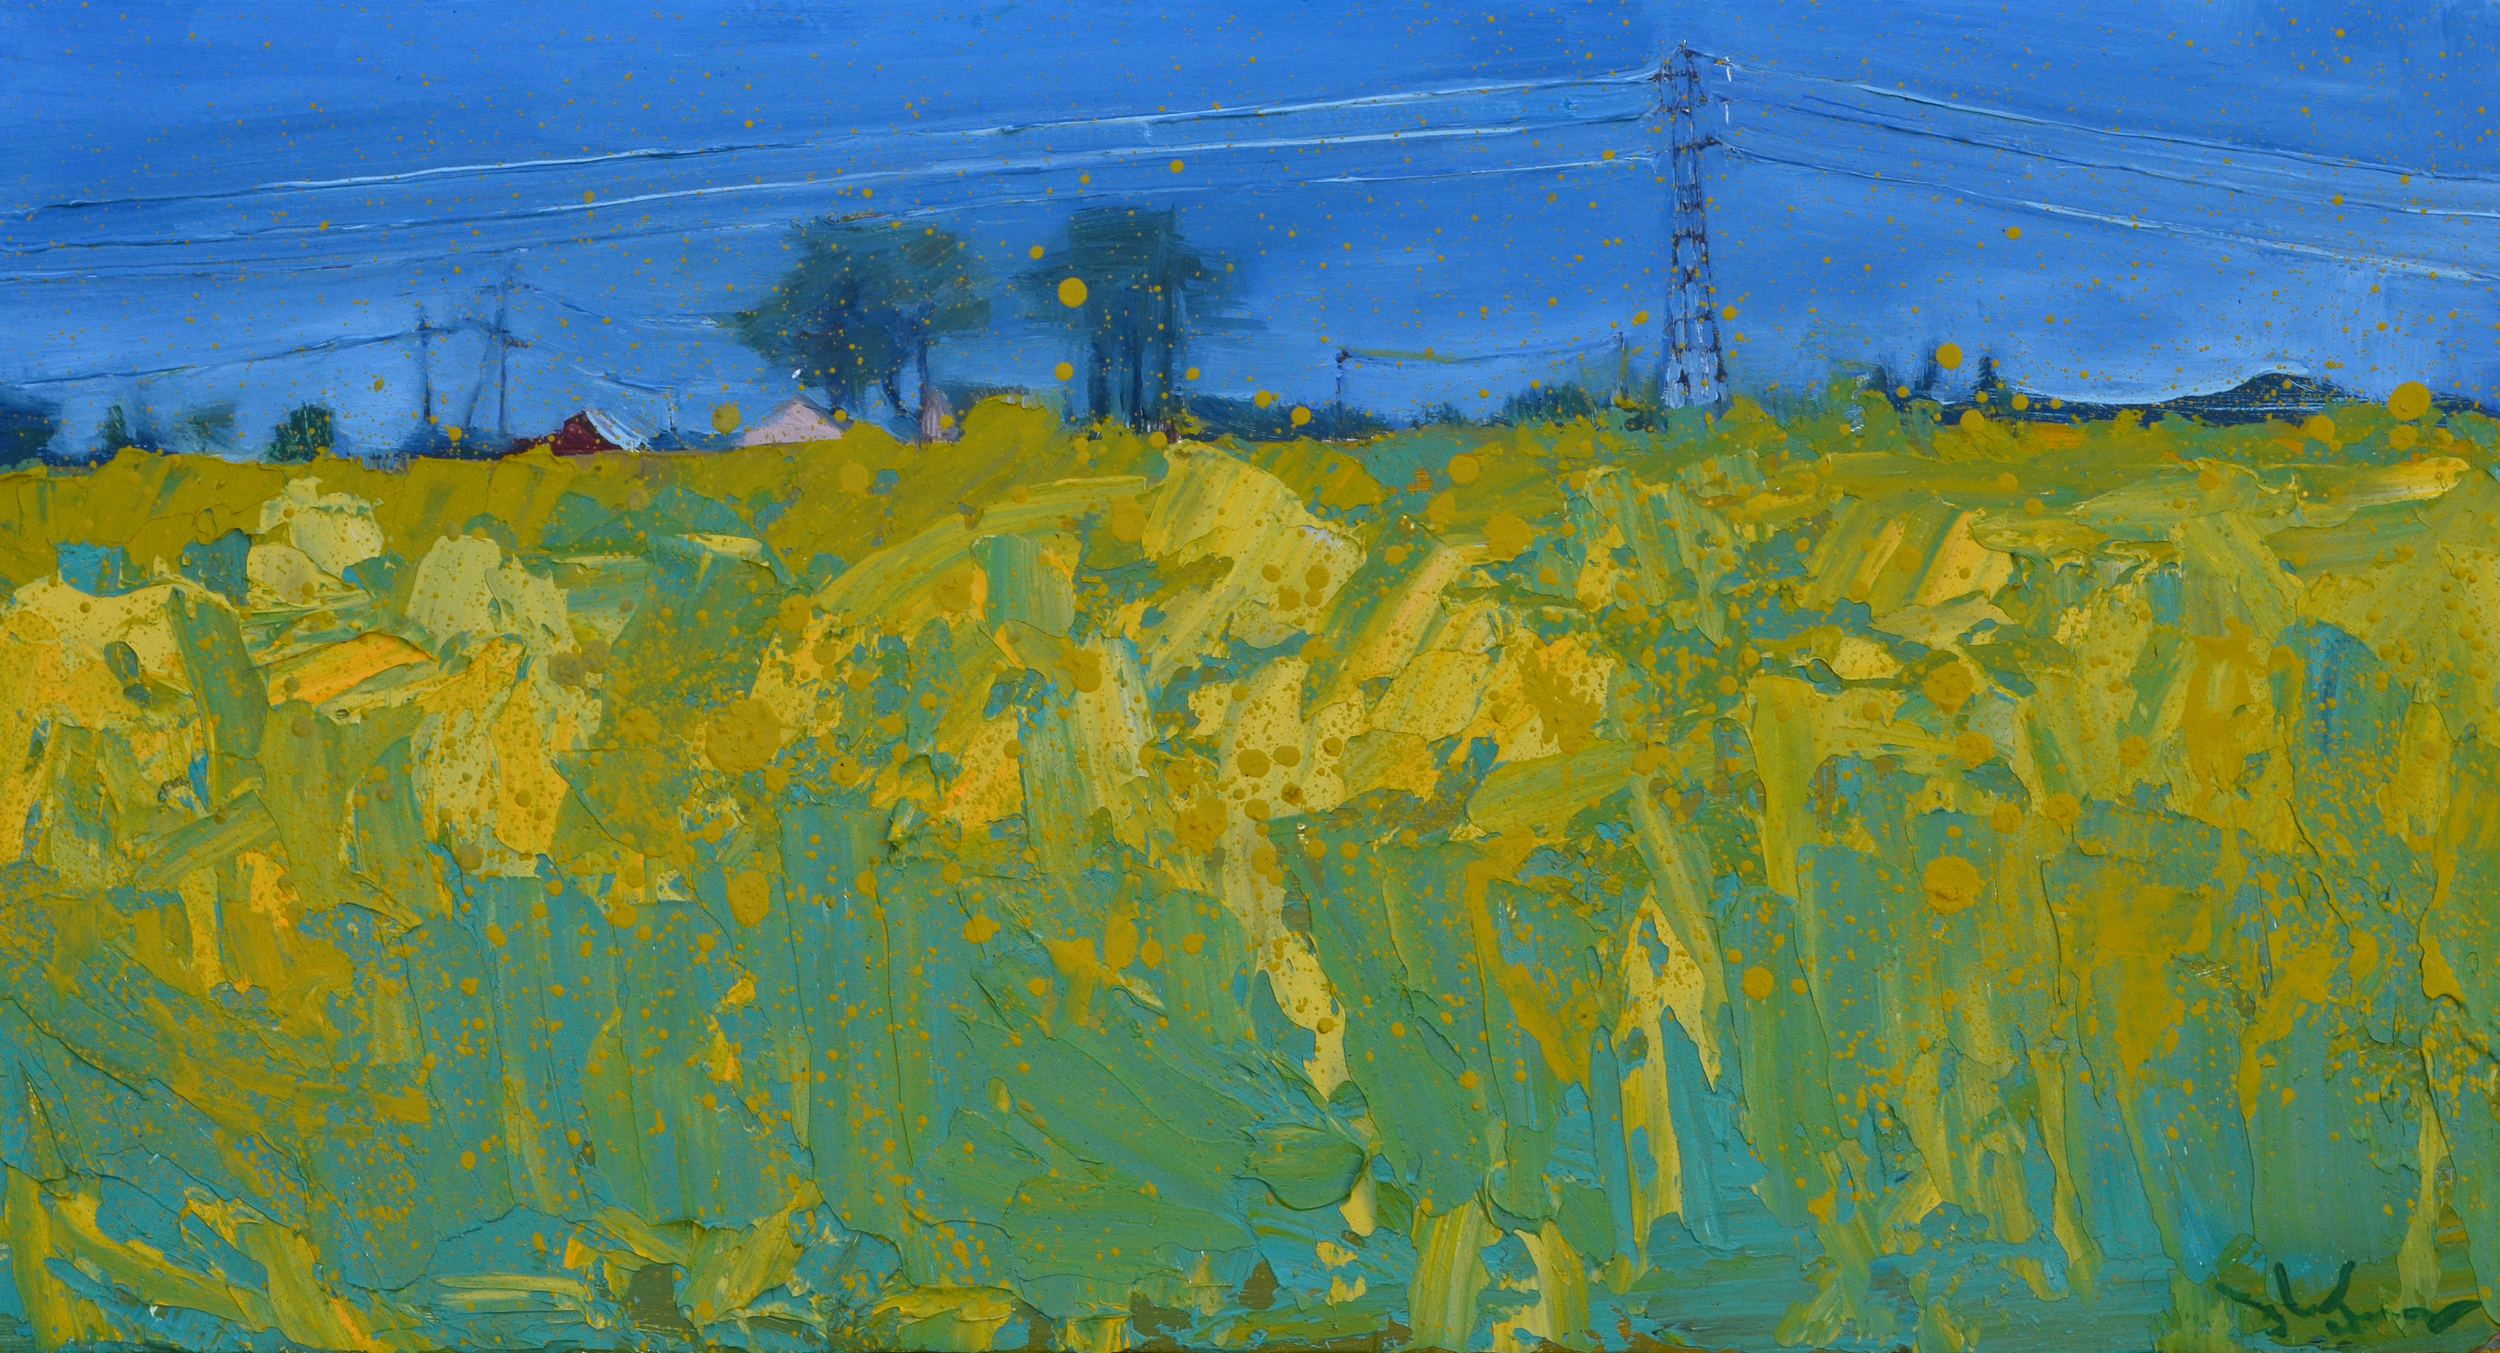 """Canola Field . 2015. Oil on panel. 22 x 12 inches. The day I painted this piece I was not alone. During the painting I took several breaks to spread manure, a most inspiring chore- why, if not for hope and longing of enrichment, would one bother?; I conversed with someone who was intrigued by what and why I was painting; I conversed with another person who thought that I shouldn't lose my day job. But, I was not alone. It was was late spring. I felt like I was stretching my roots down into a place of warmth while being drawn up into the light of human interest. I originally called this painting """"A Growing Joy""""."""